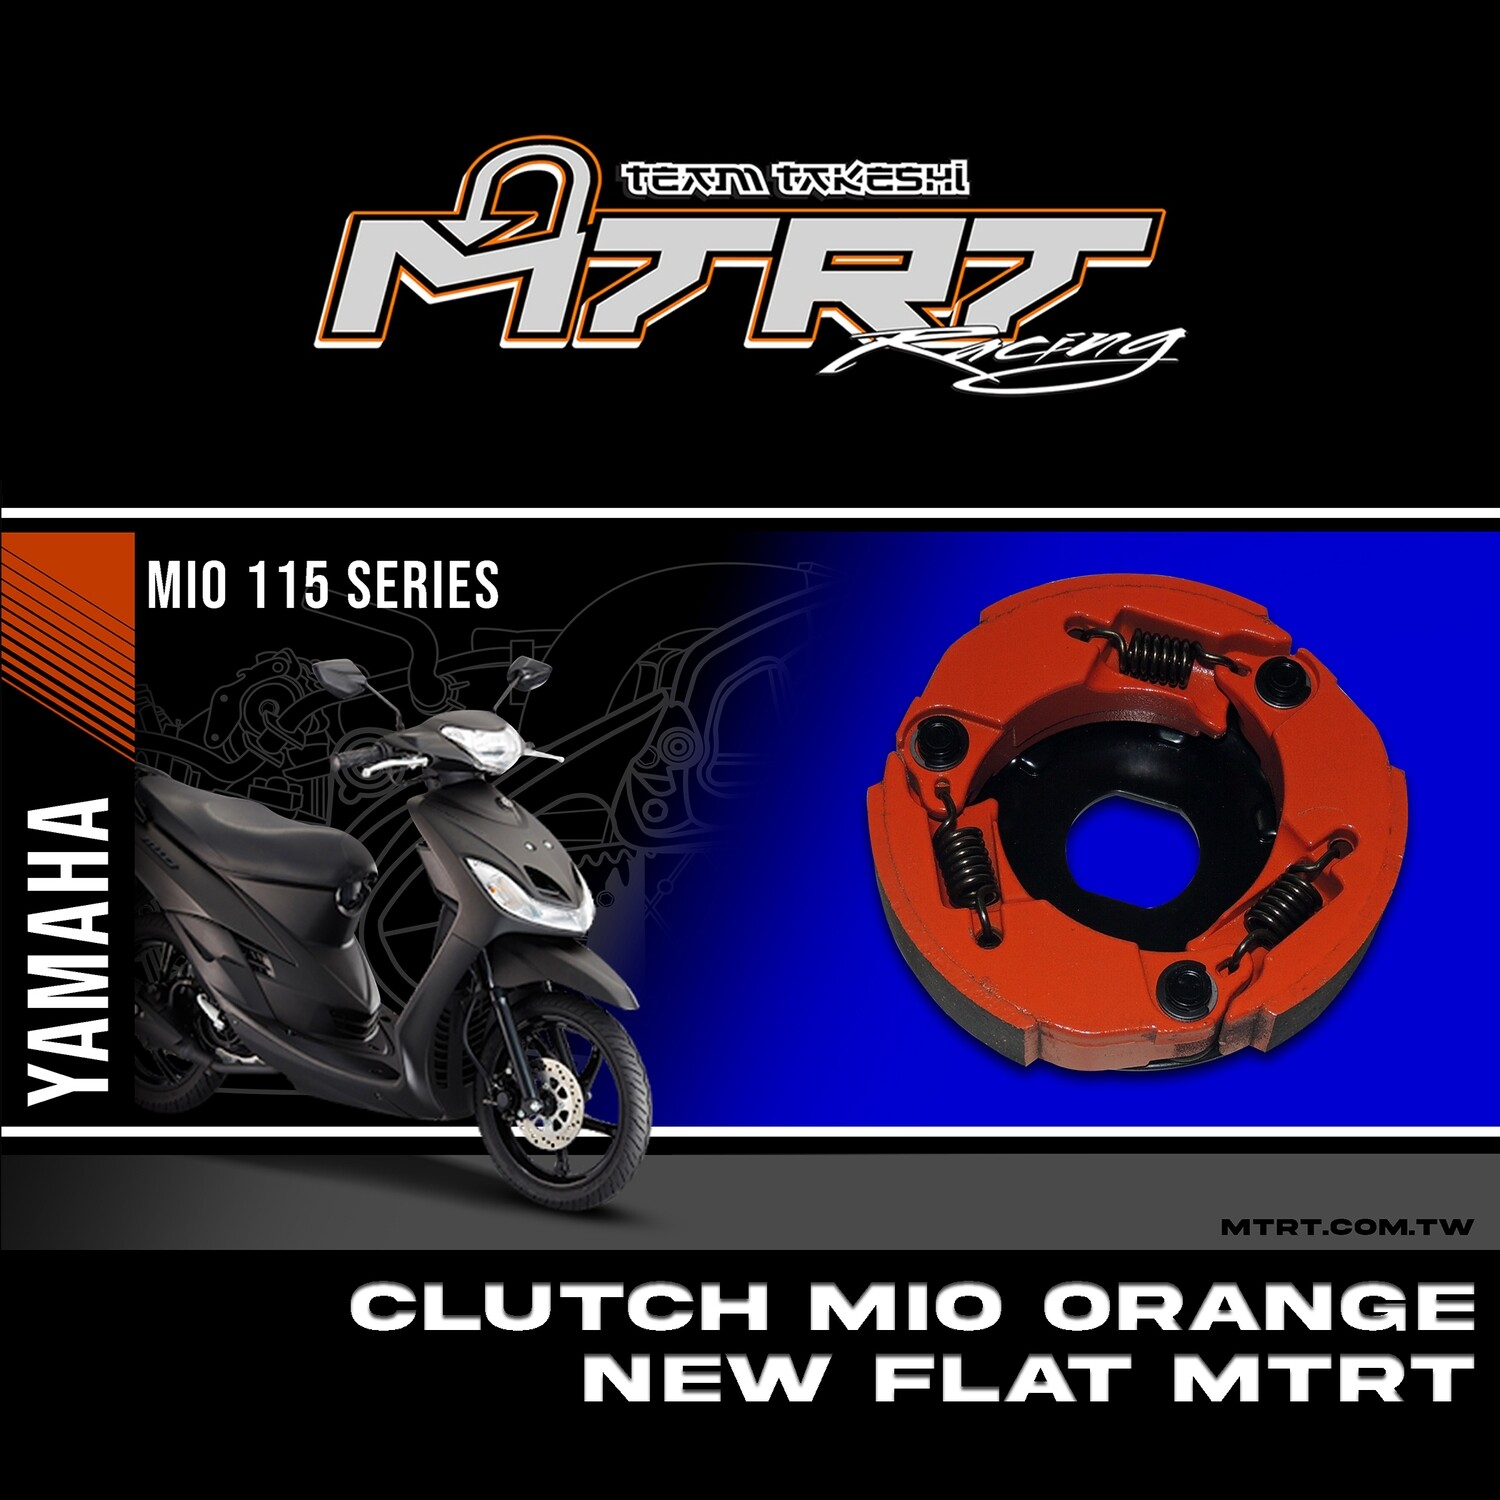 CLUTCH MIO Orange Flat MTRT